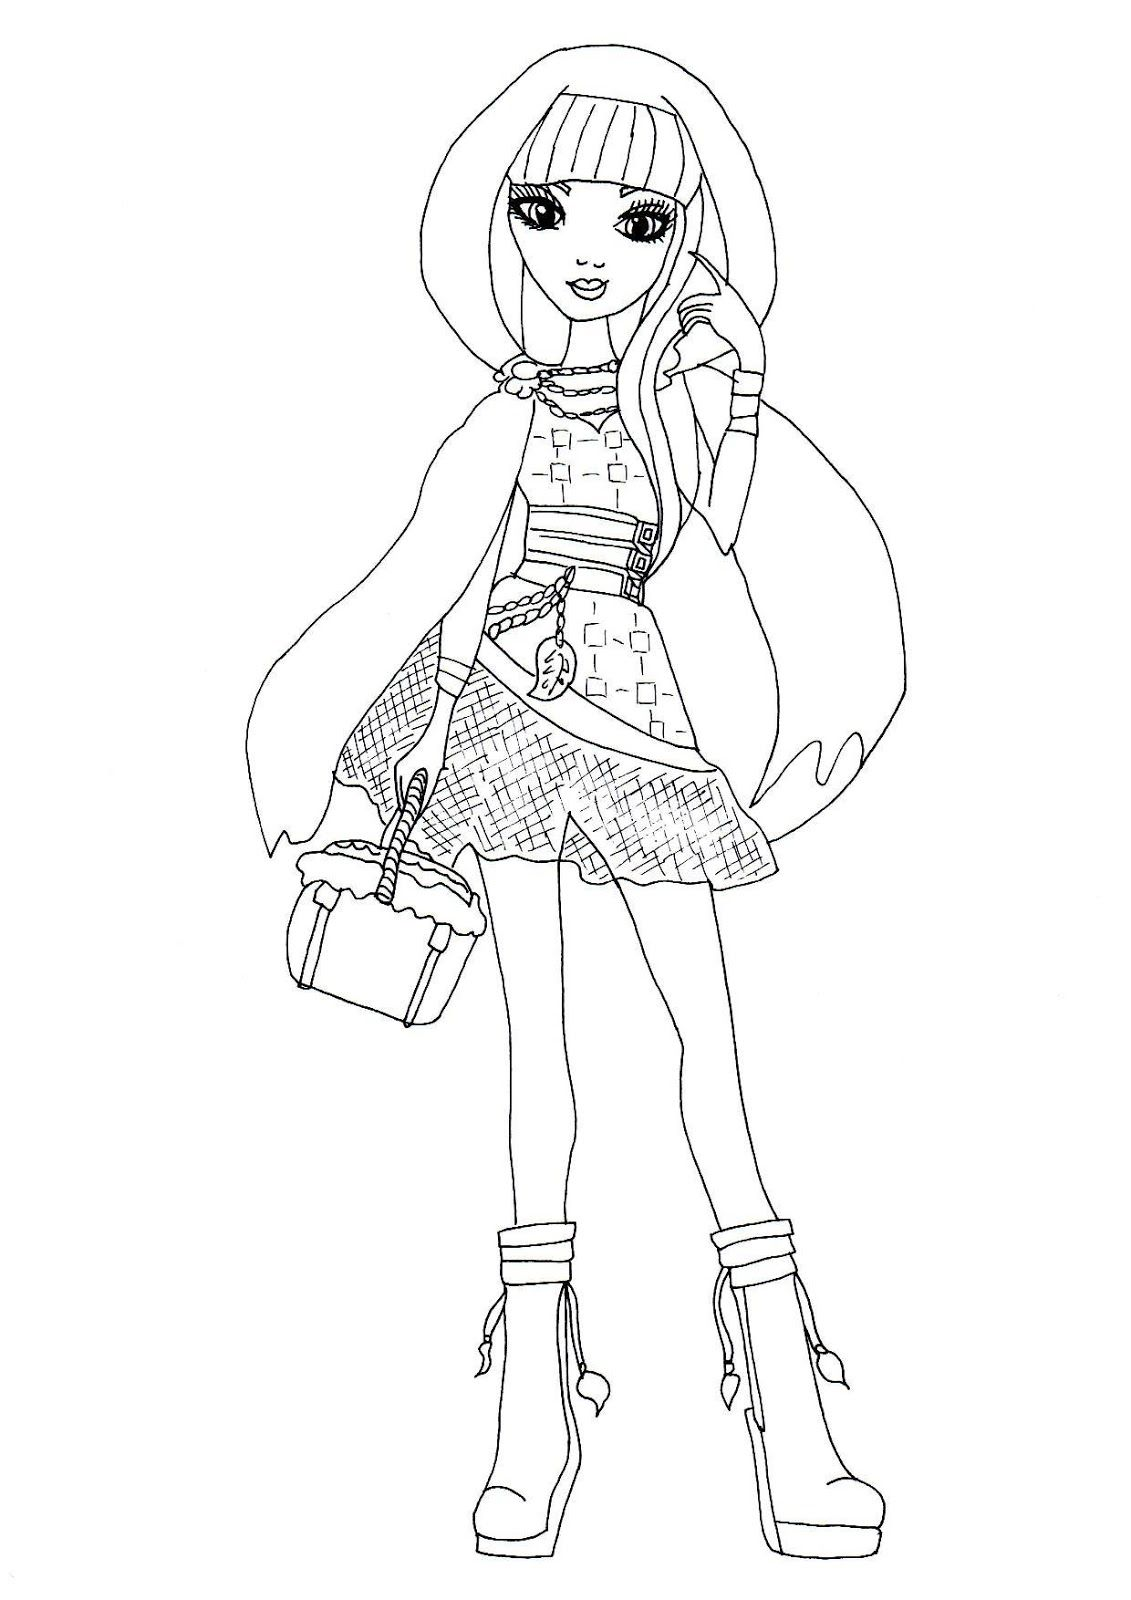 Free coloring pages ever after high - Ever After High Coloring Pages